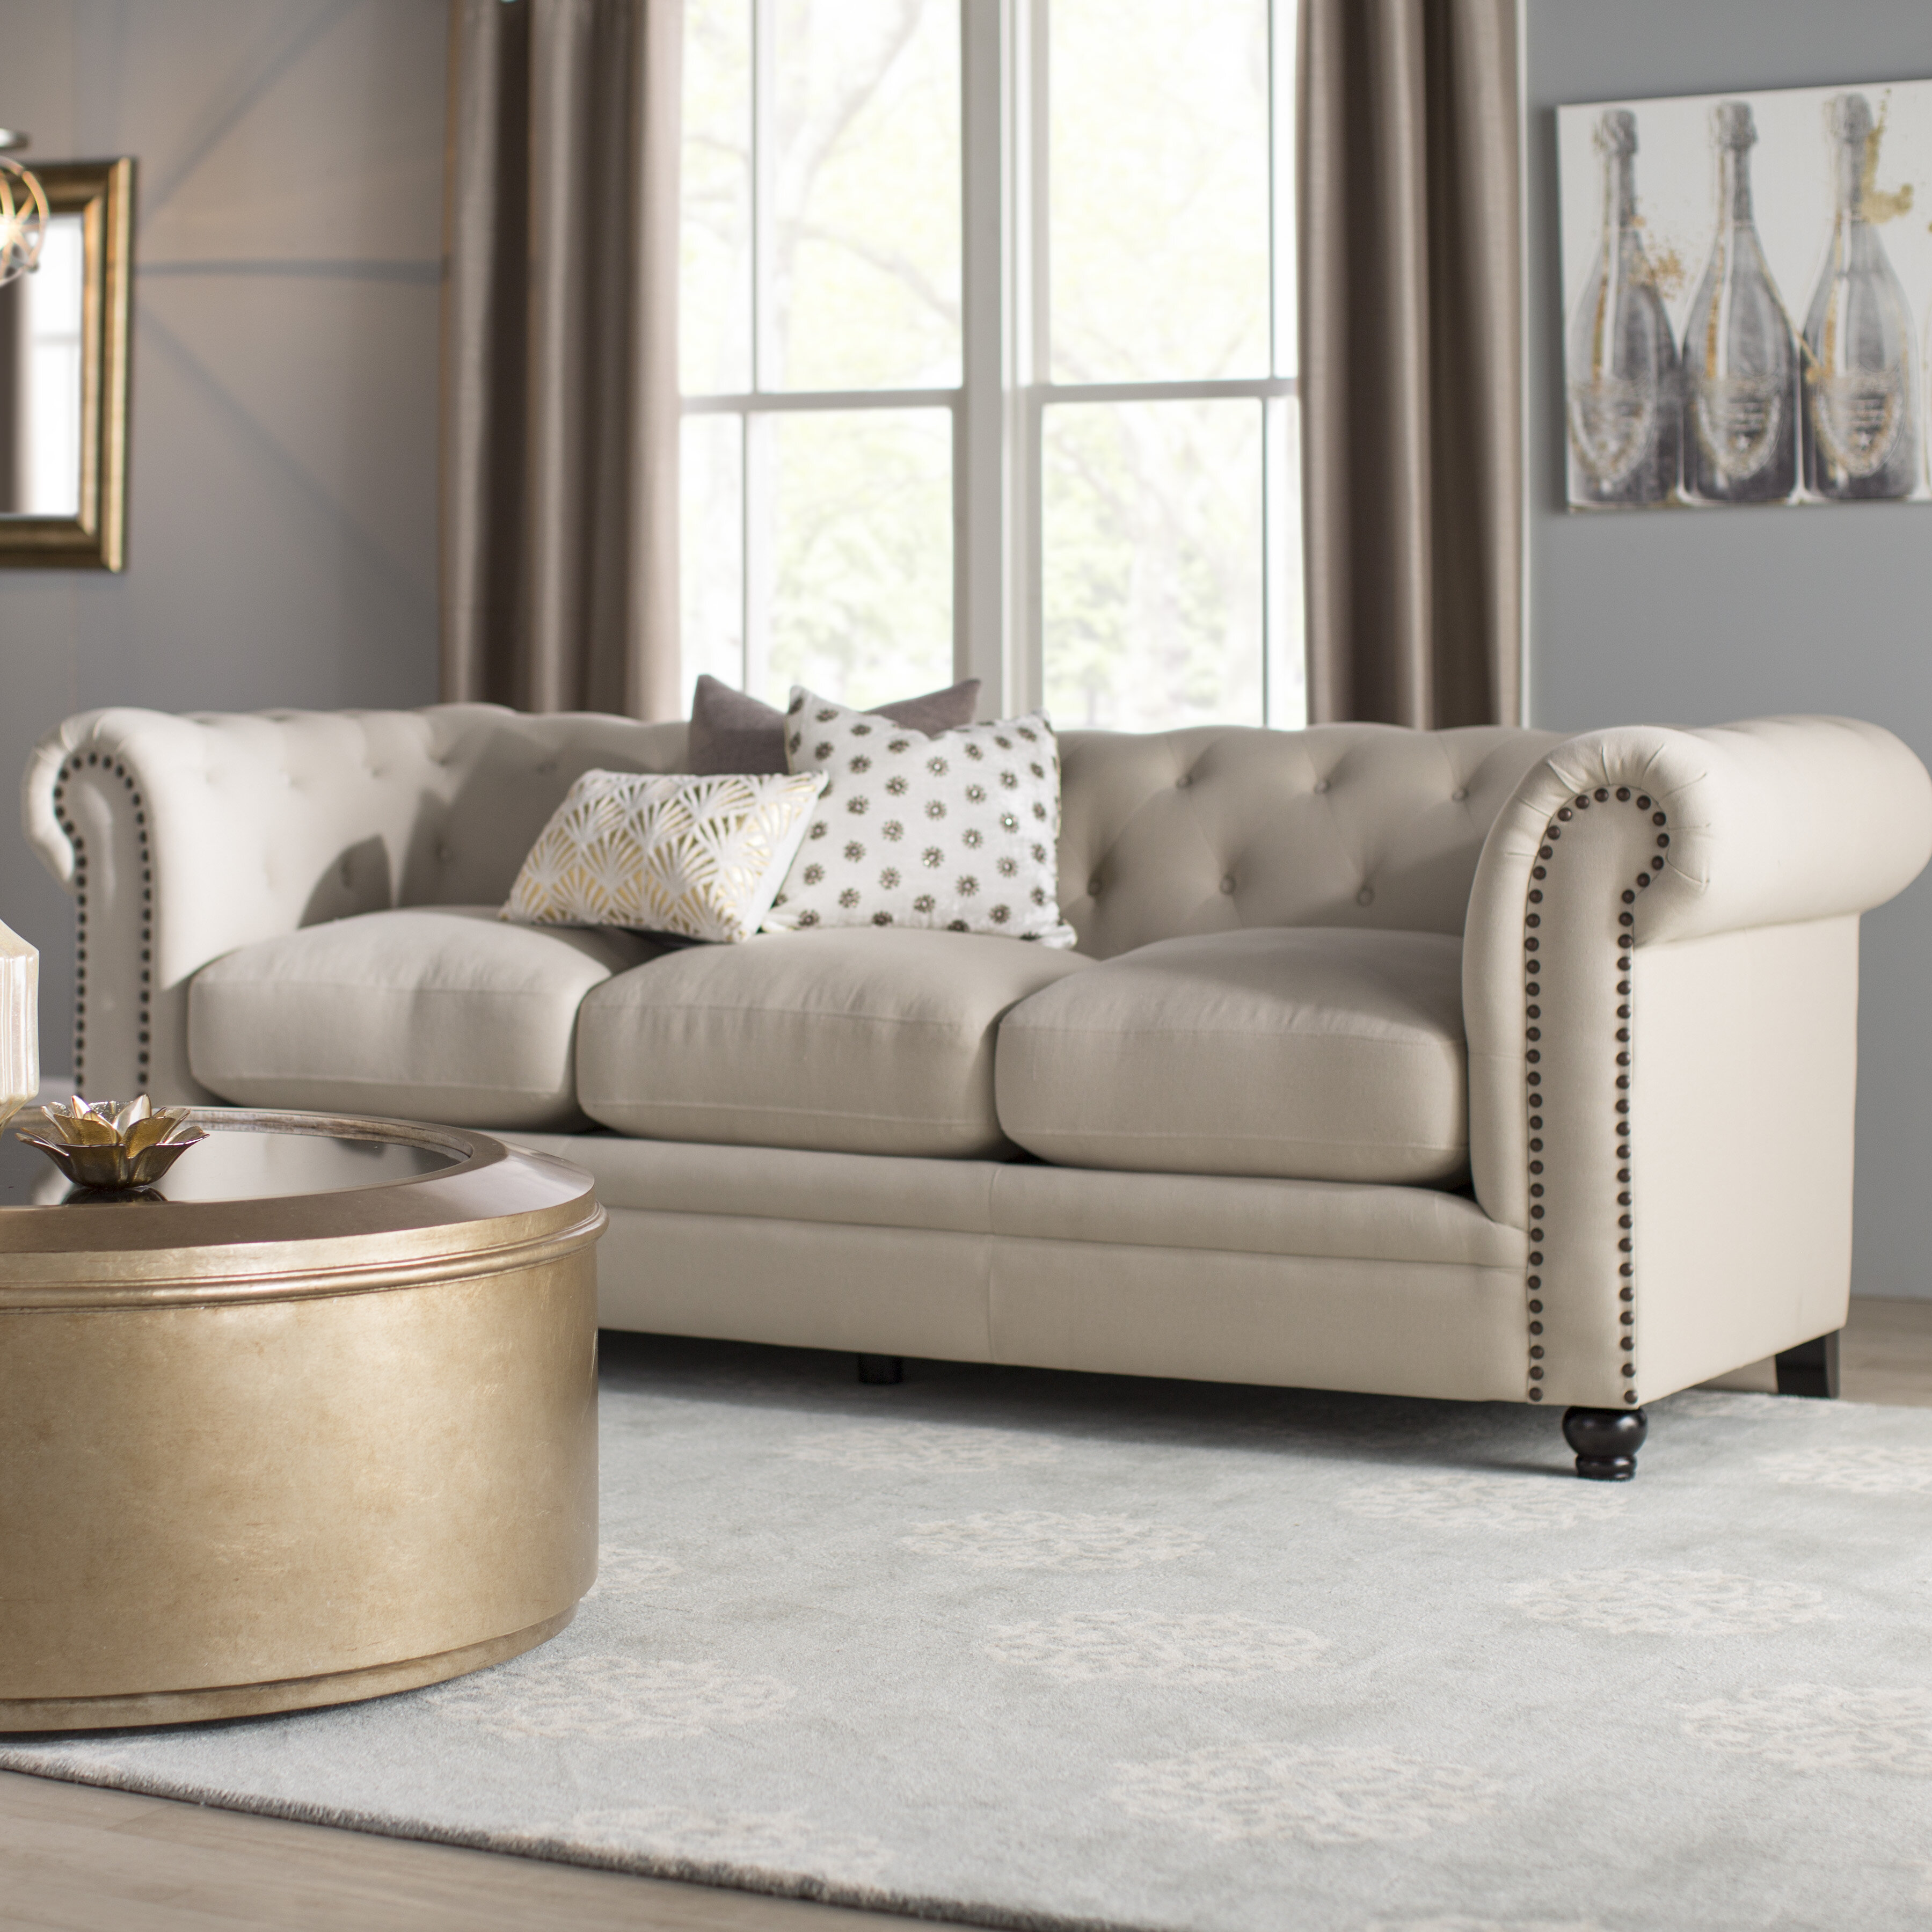 Kelly Clarkson Home Andre Chesterfield 93 Rolled Arm Sofa Reviews Wayfair